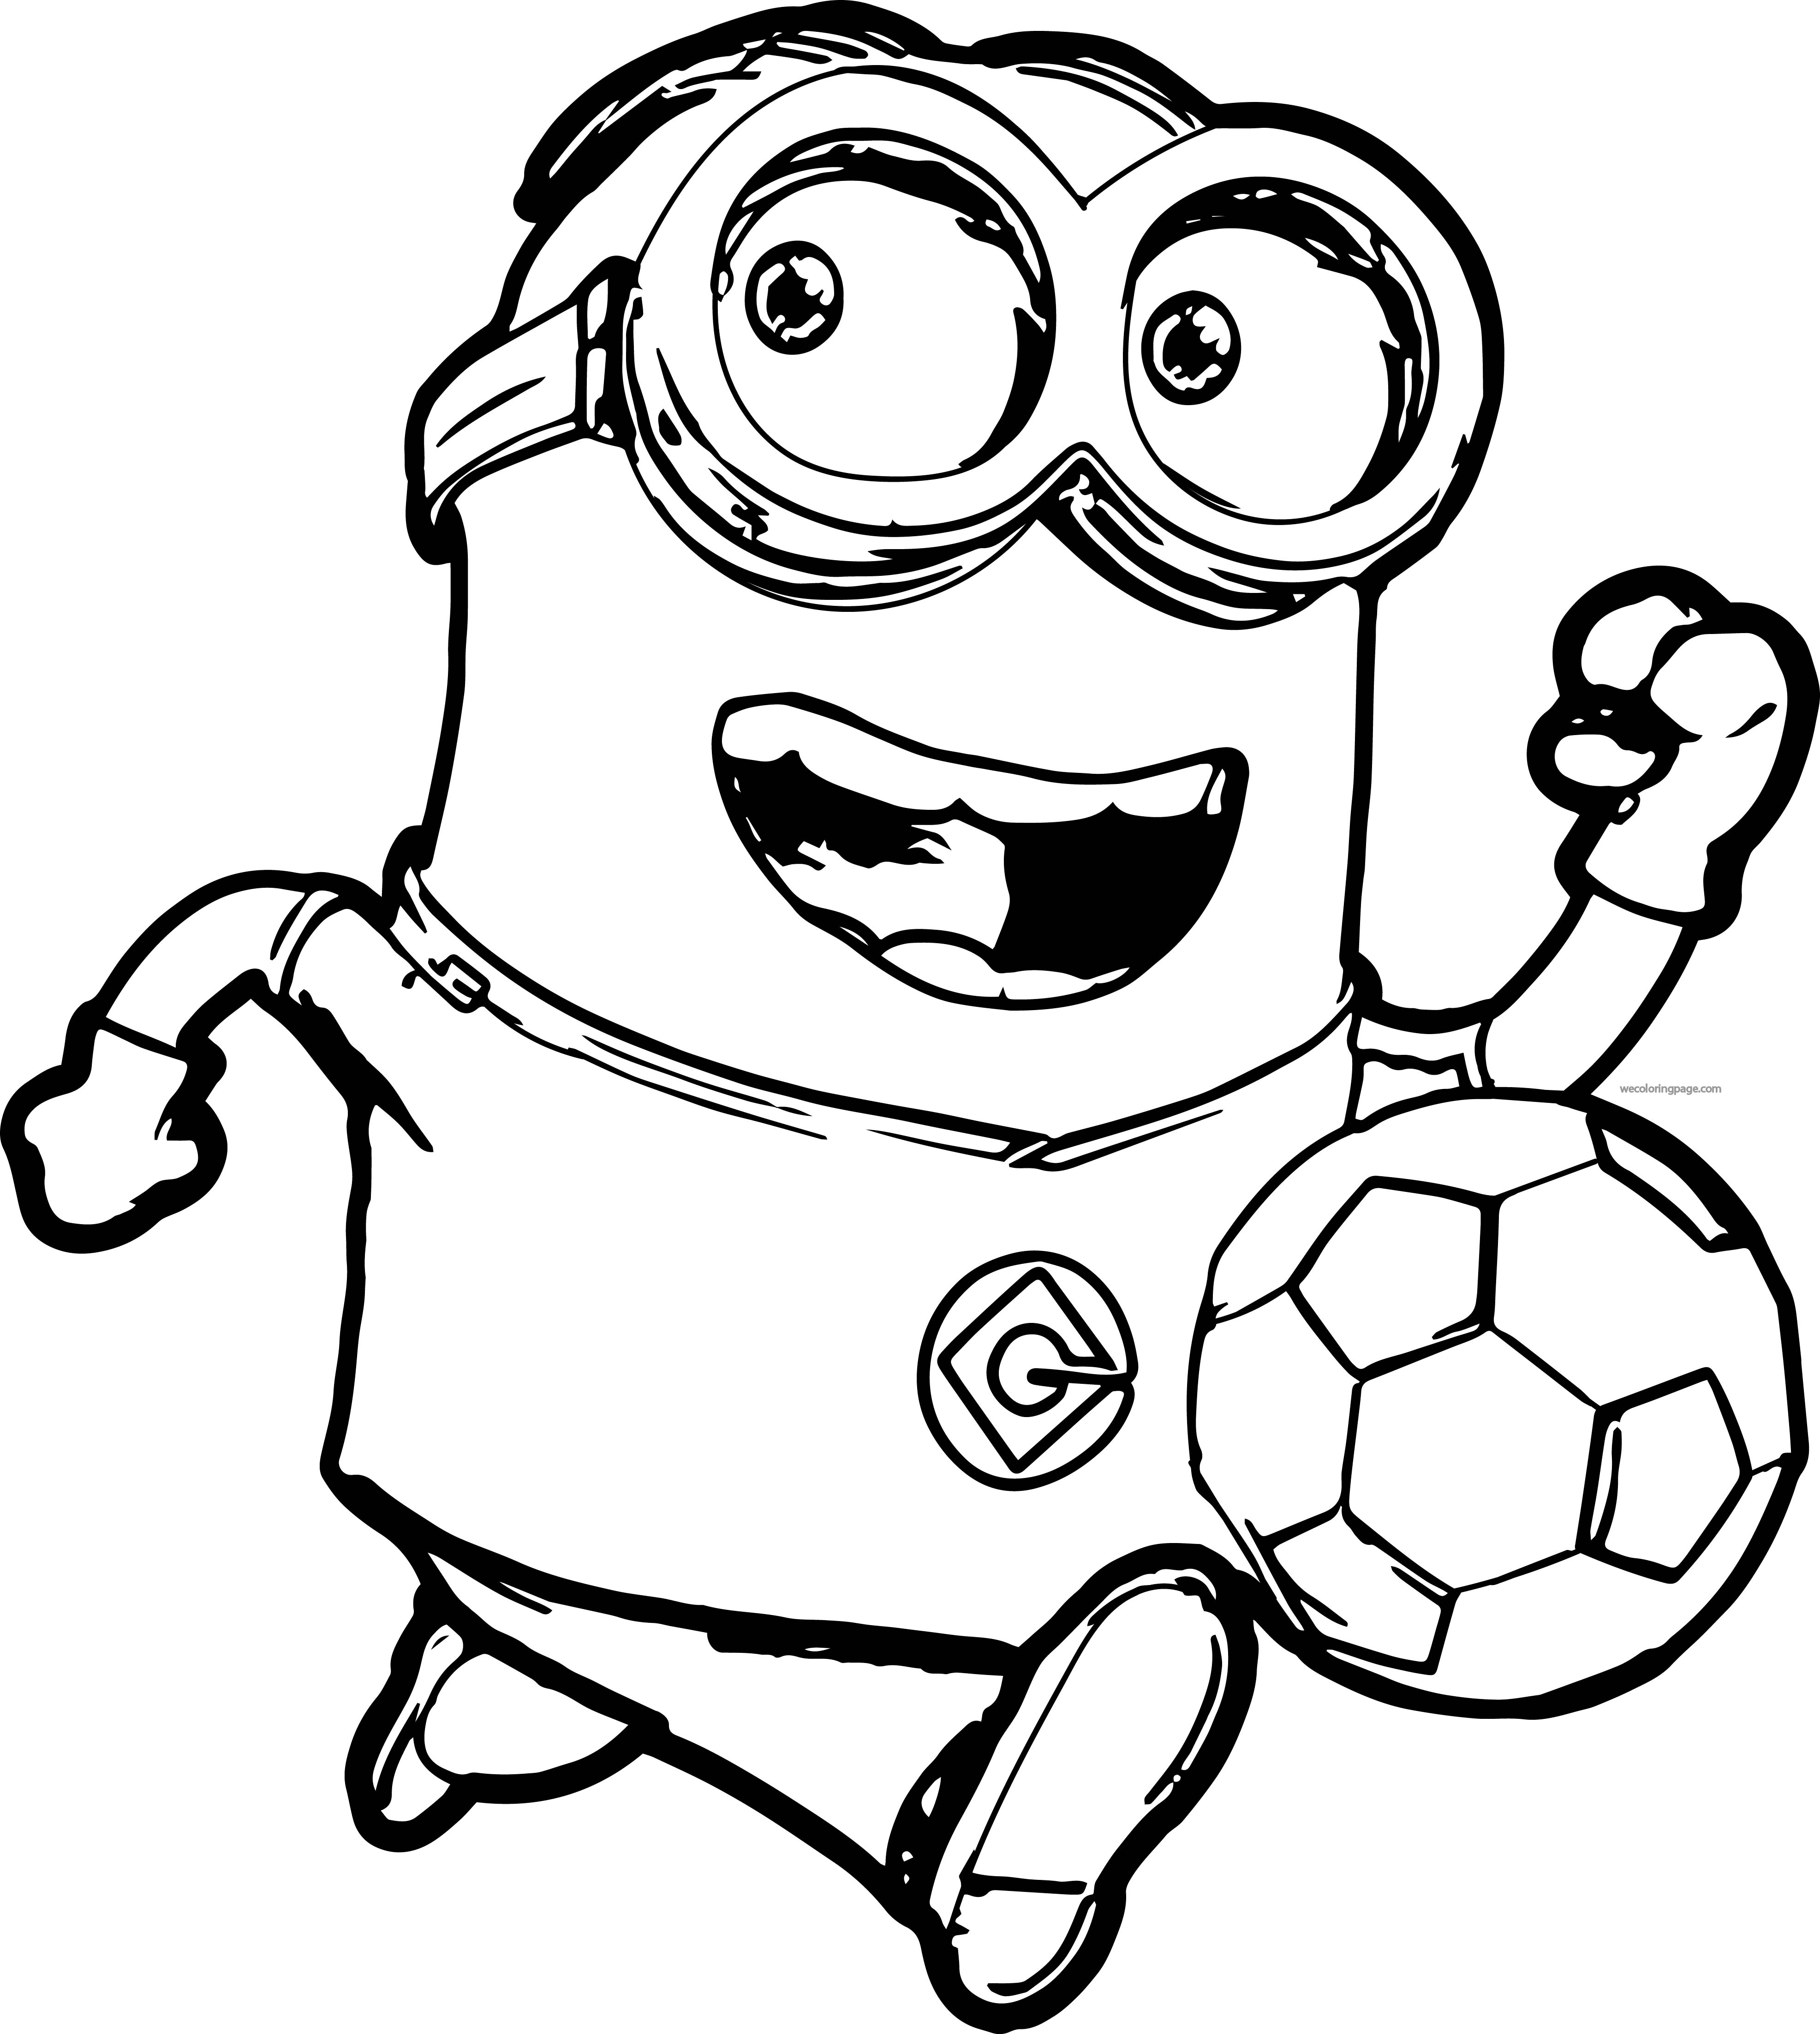 pictures of minions to color minion coloring pages best coloring pages for kids color to of pictures minions